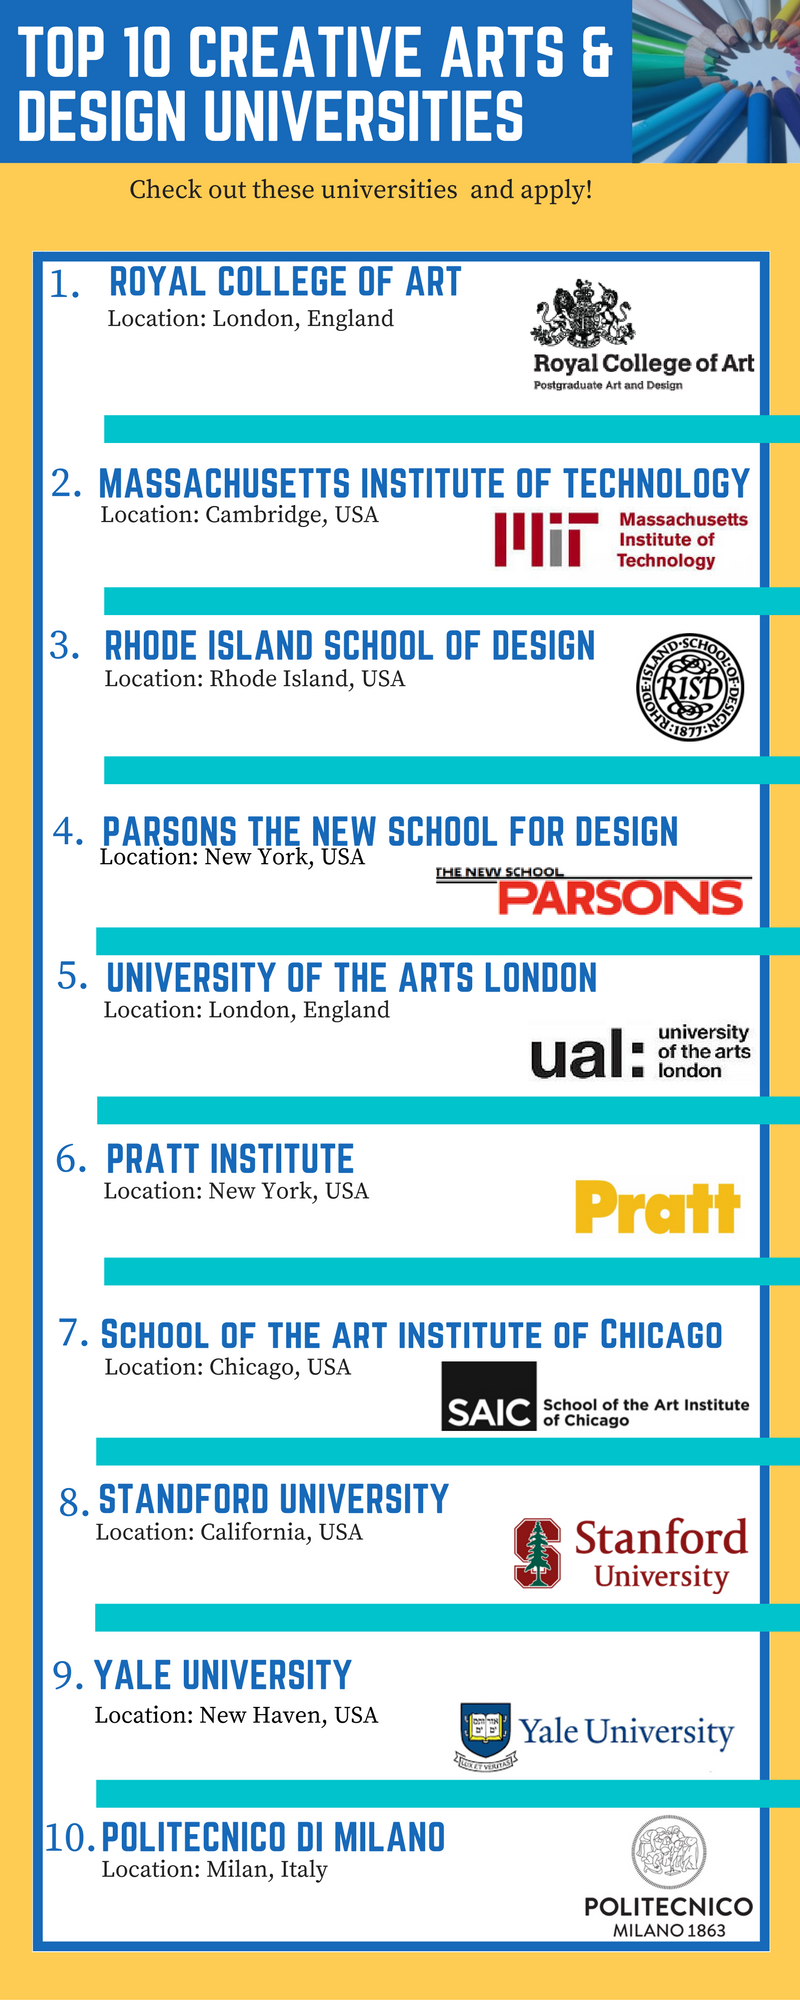 Top 10 creative arts and design schools